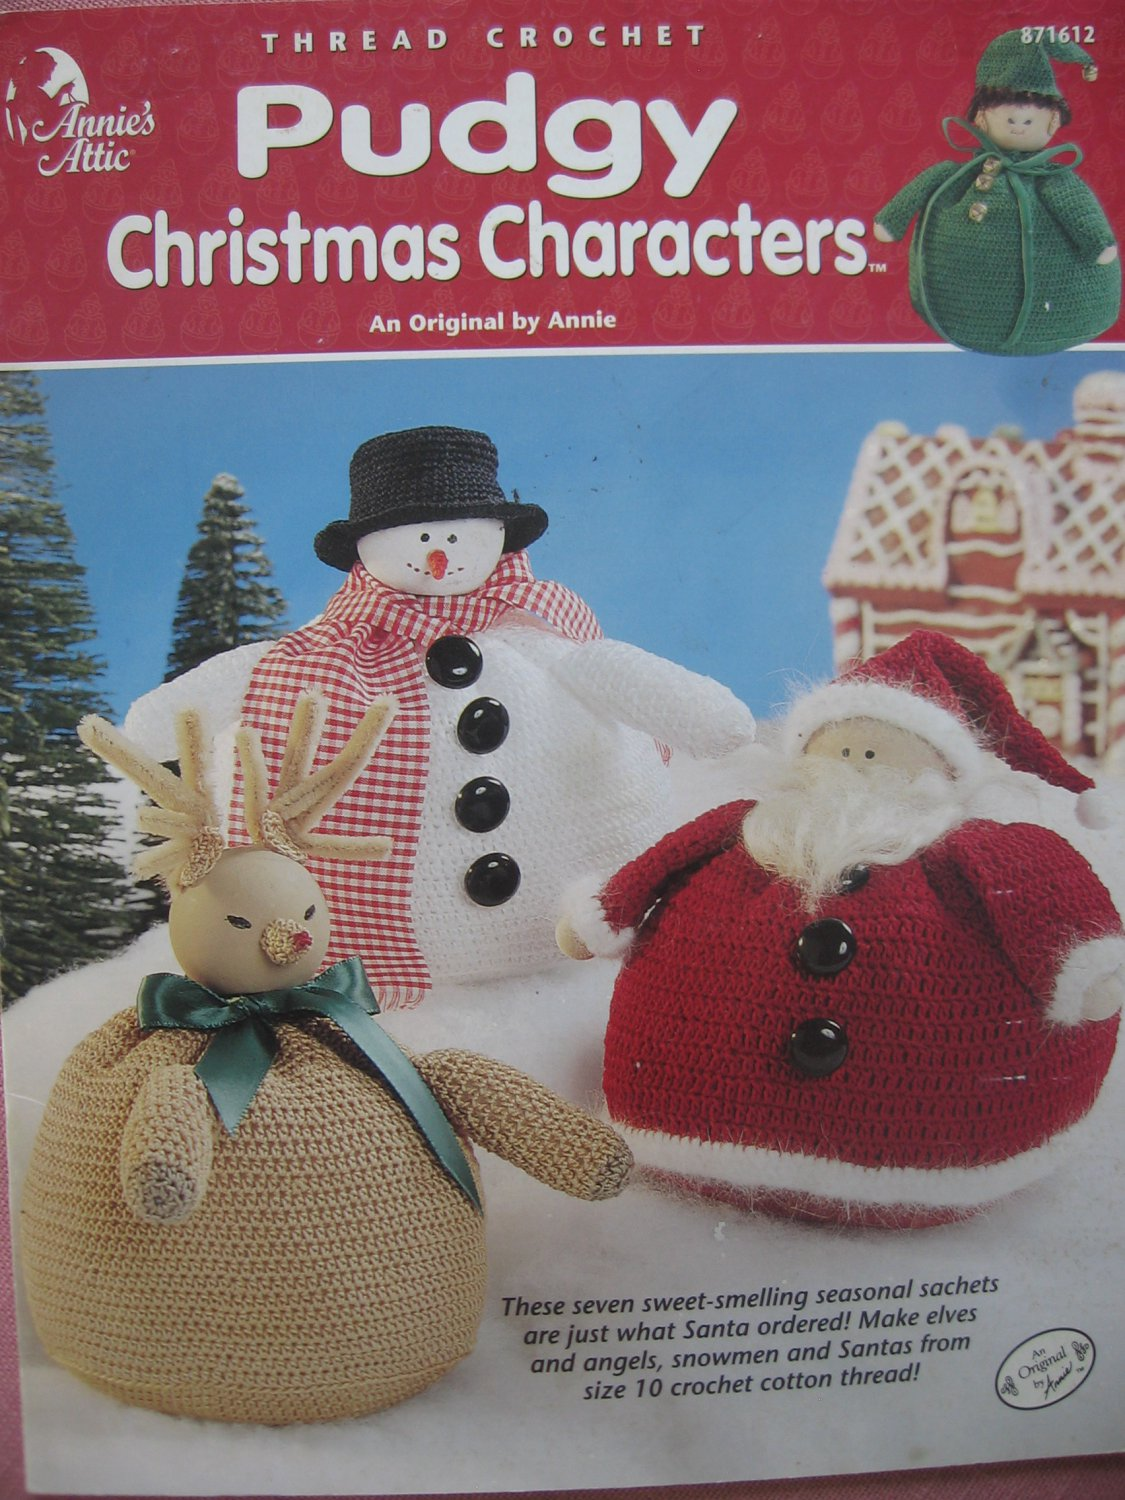 Pudgy Christmas Characters 7 Sachets Crochet Pattern by Annie's Attic